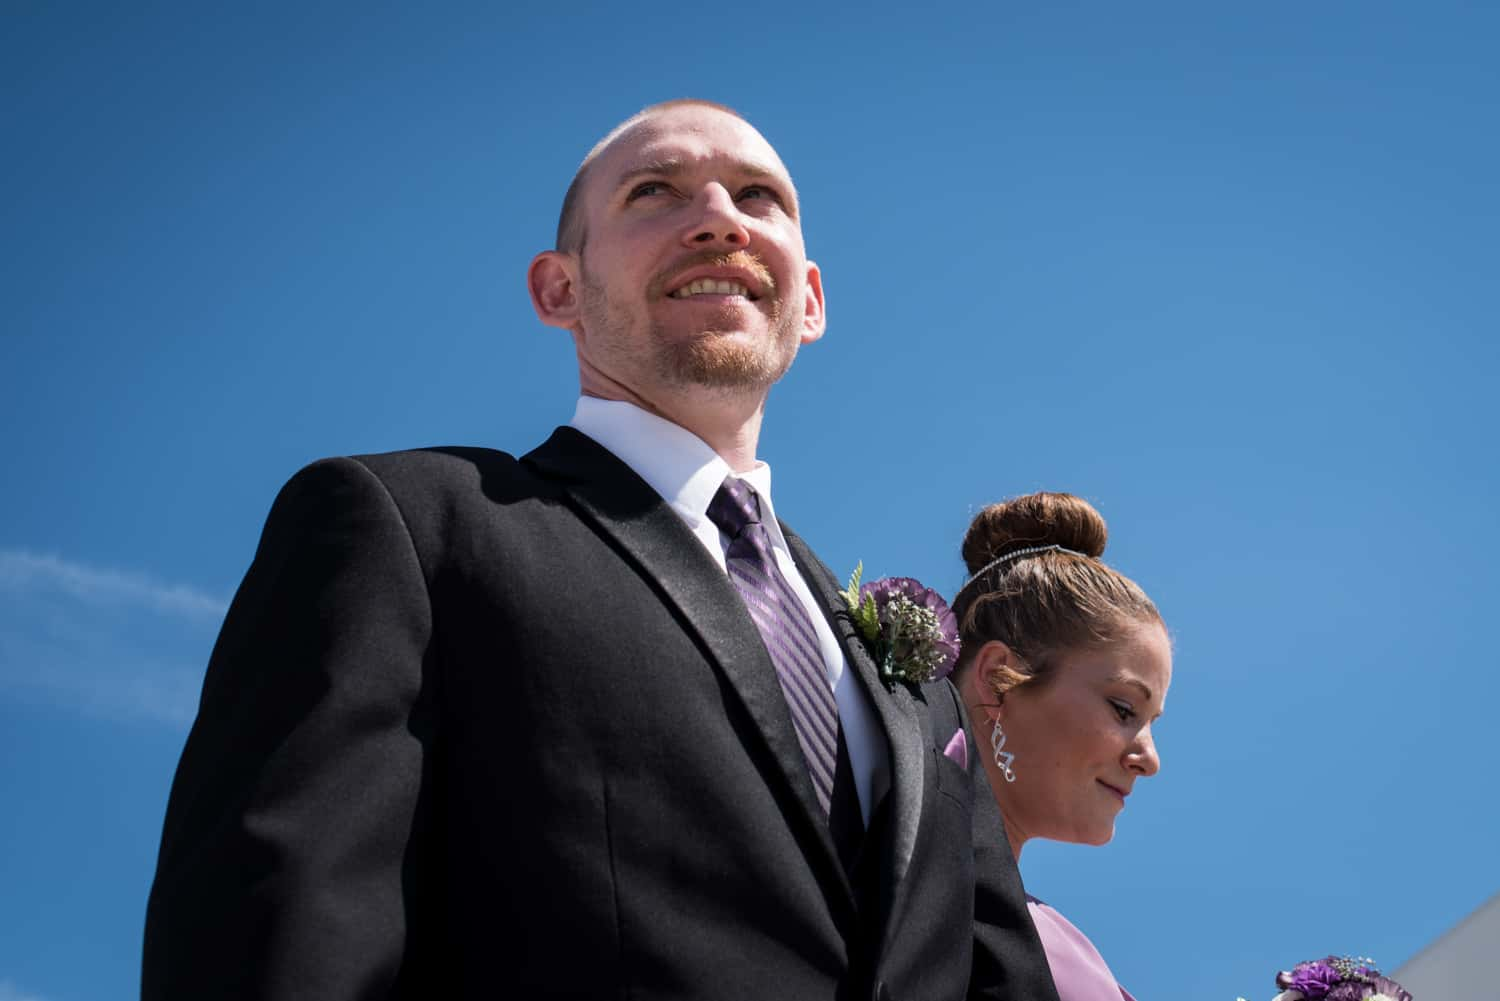 Low angle photograph of groomsman and bridesmaid wearing purple flowers in front of a big blue sky.